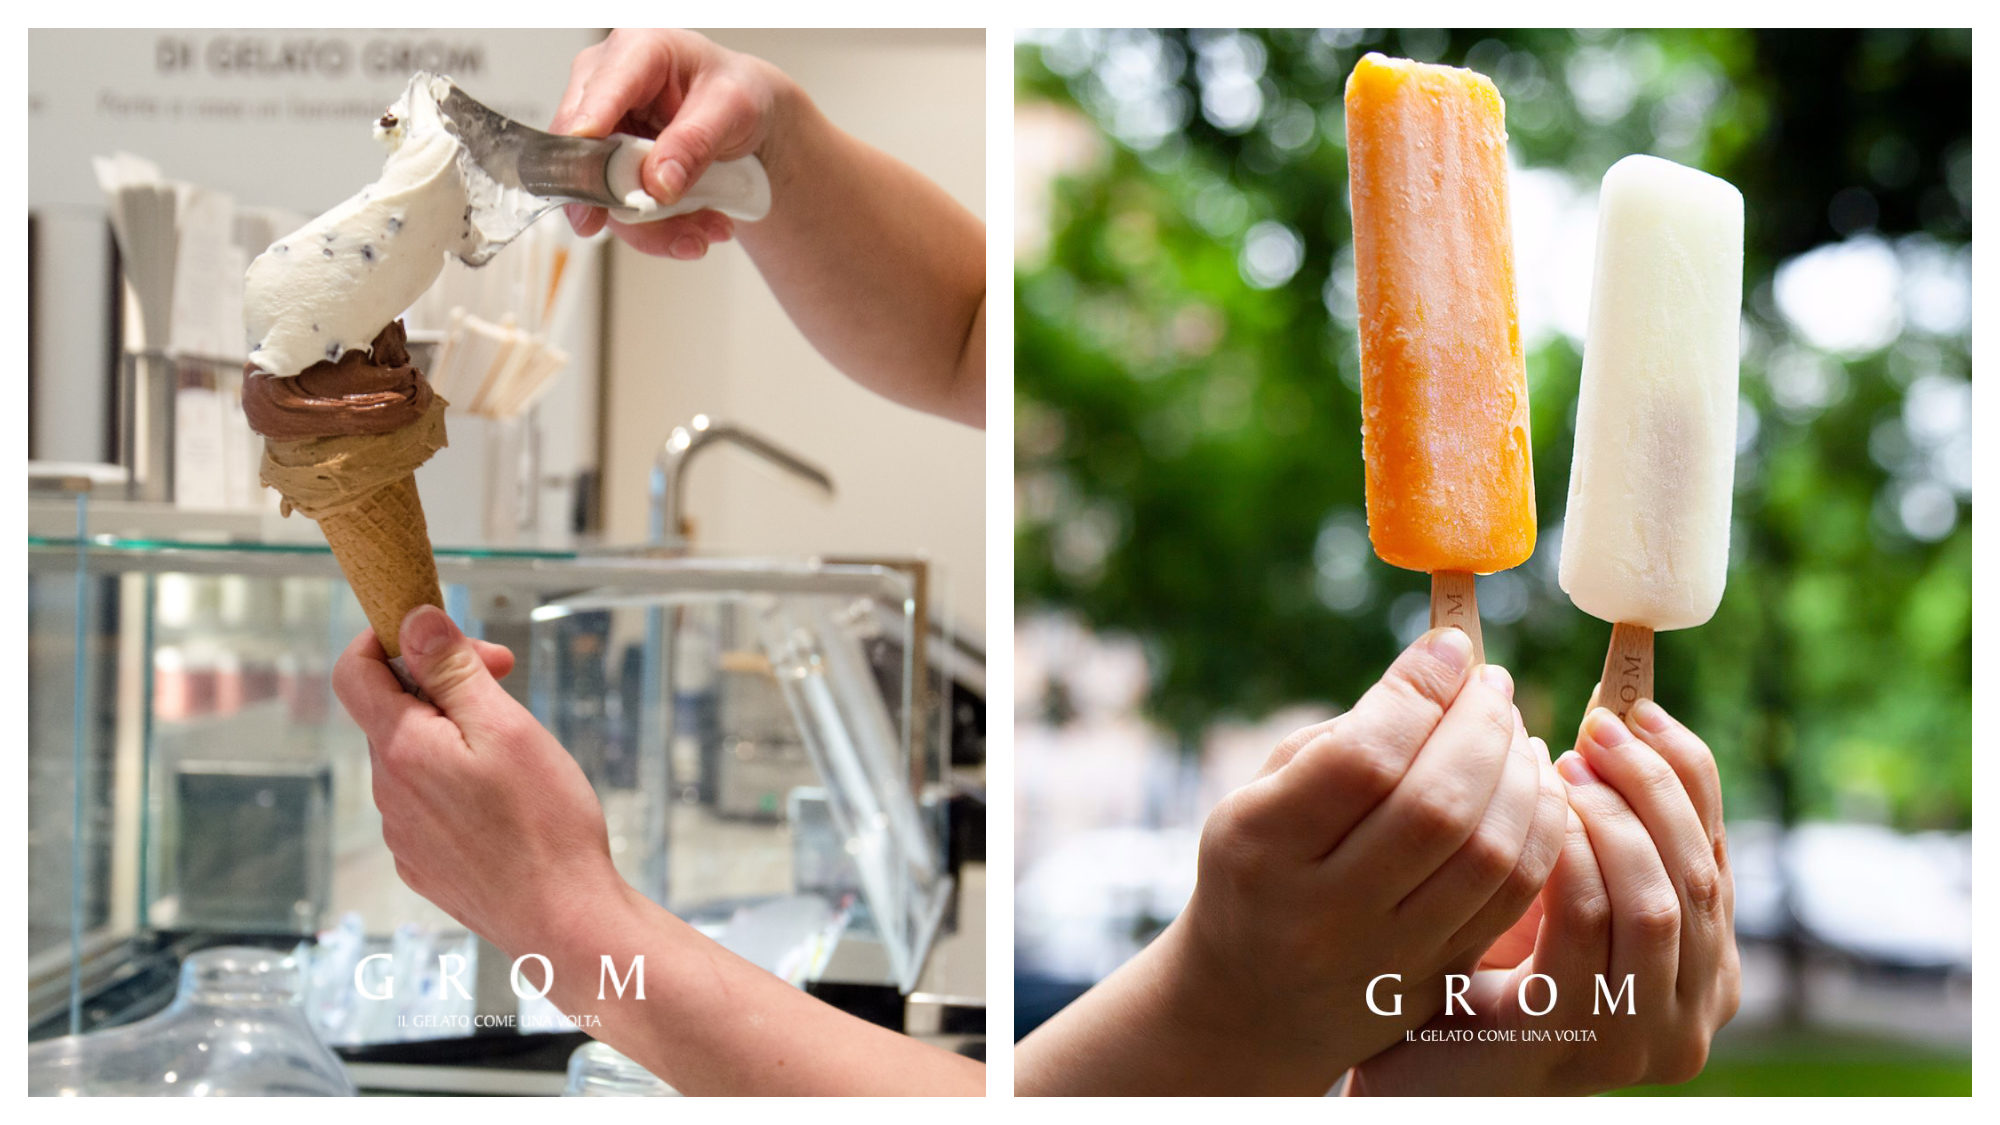 A cone ice cream being served up (left) and two ice lollies, one orange, one white (right) at GROM.